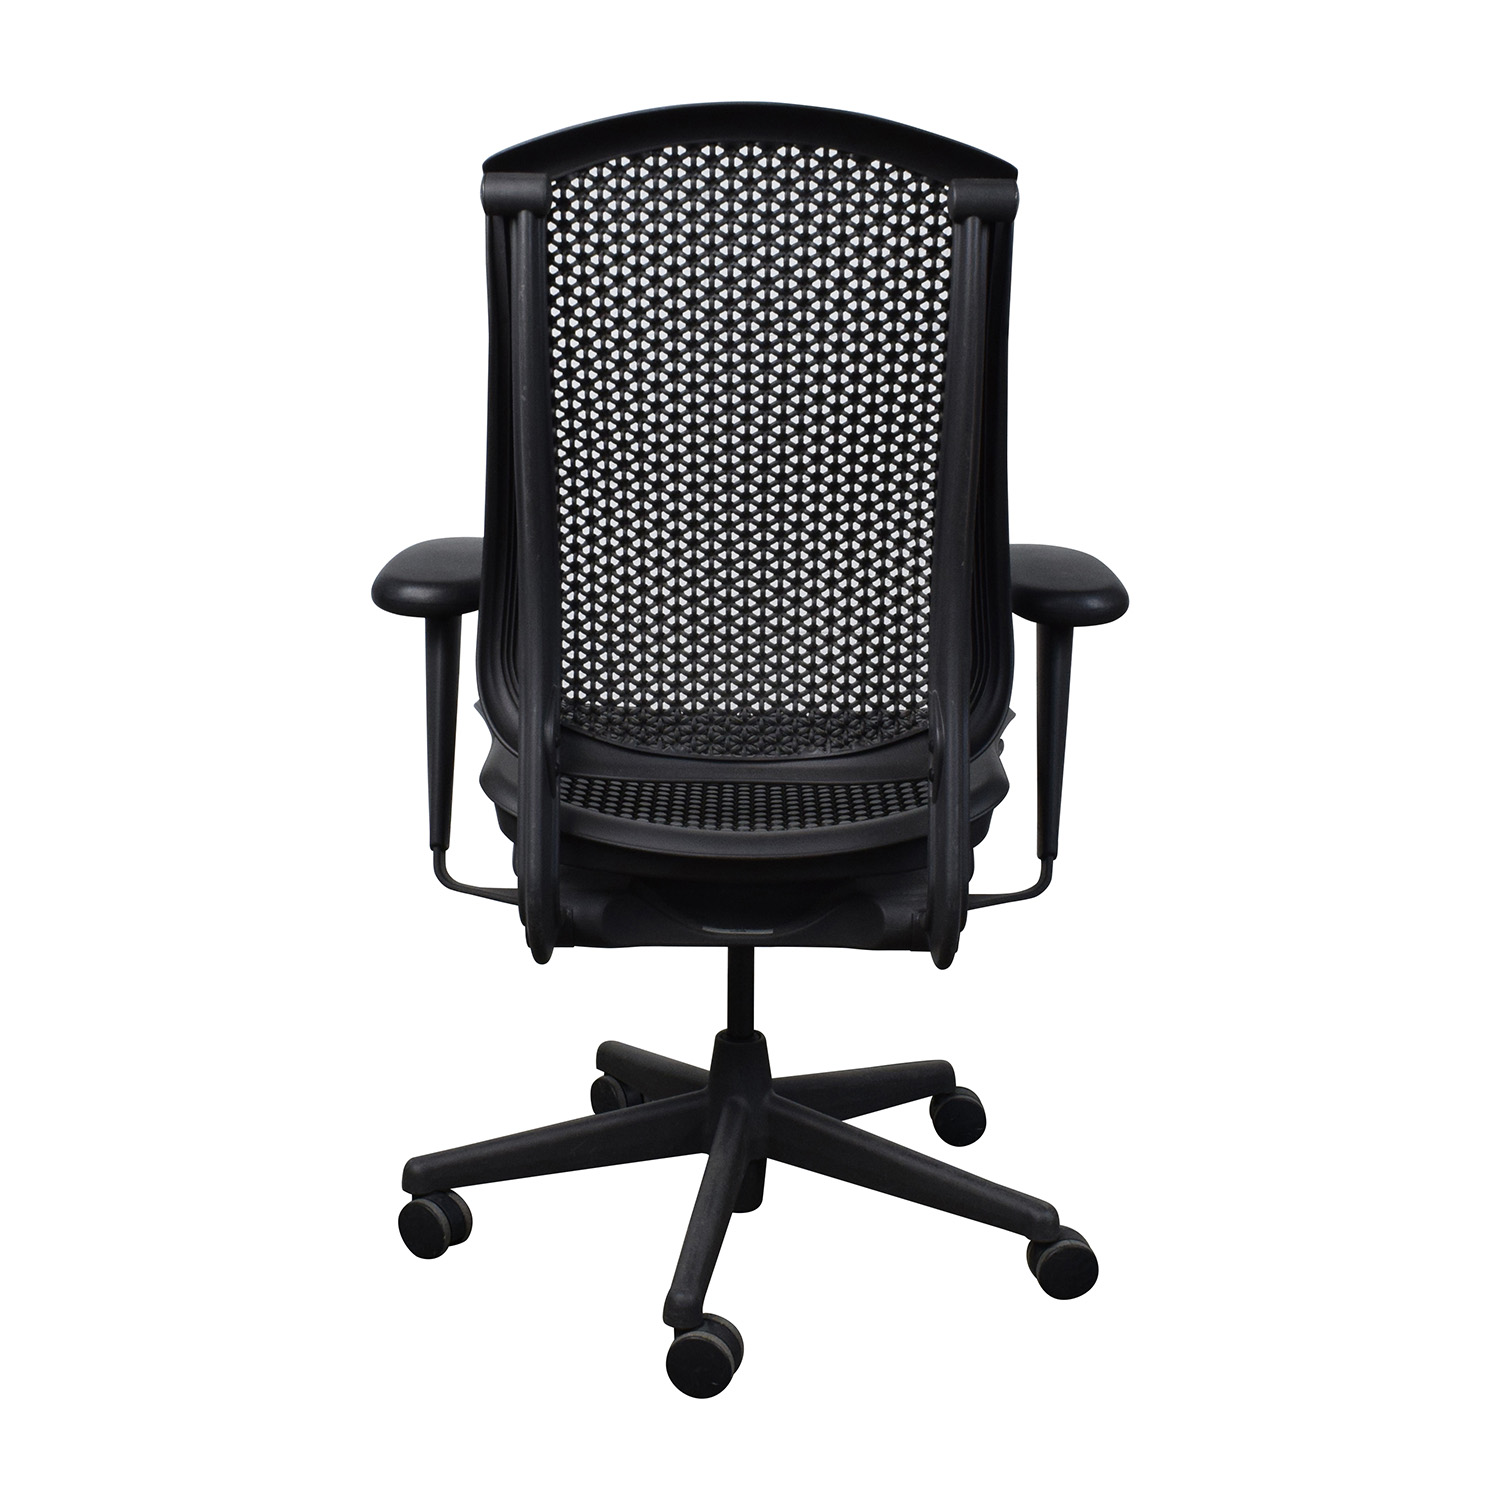 63 off herman miller herman miller celle office chair chairs. Black Bedroom Furniture Sets. Home Design Ideas